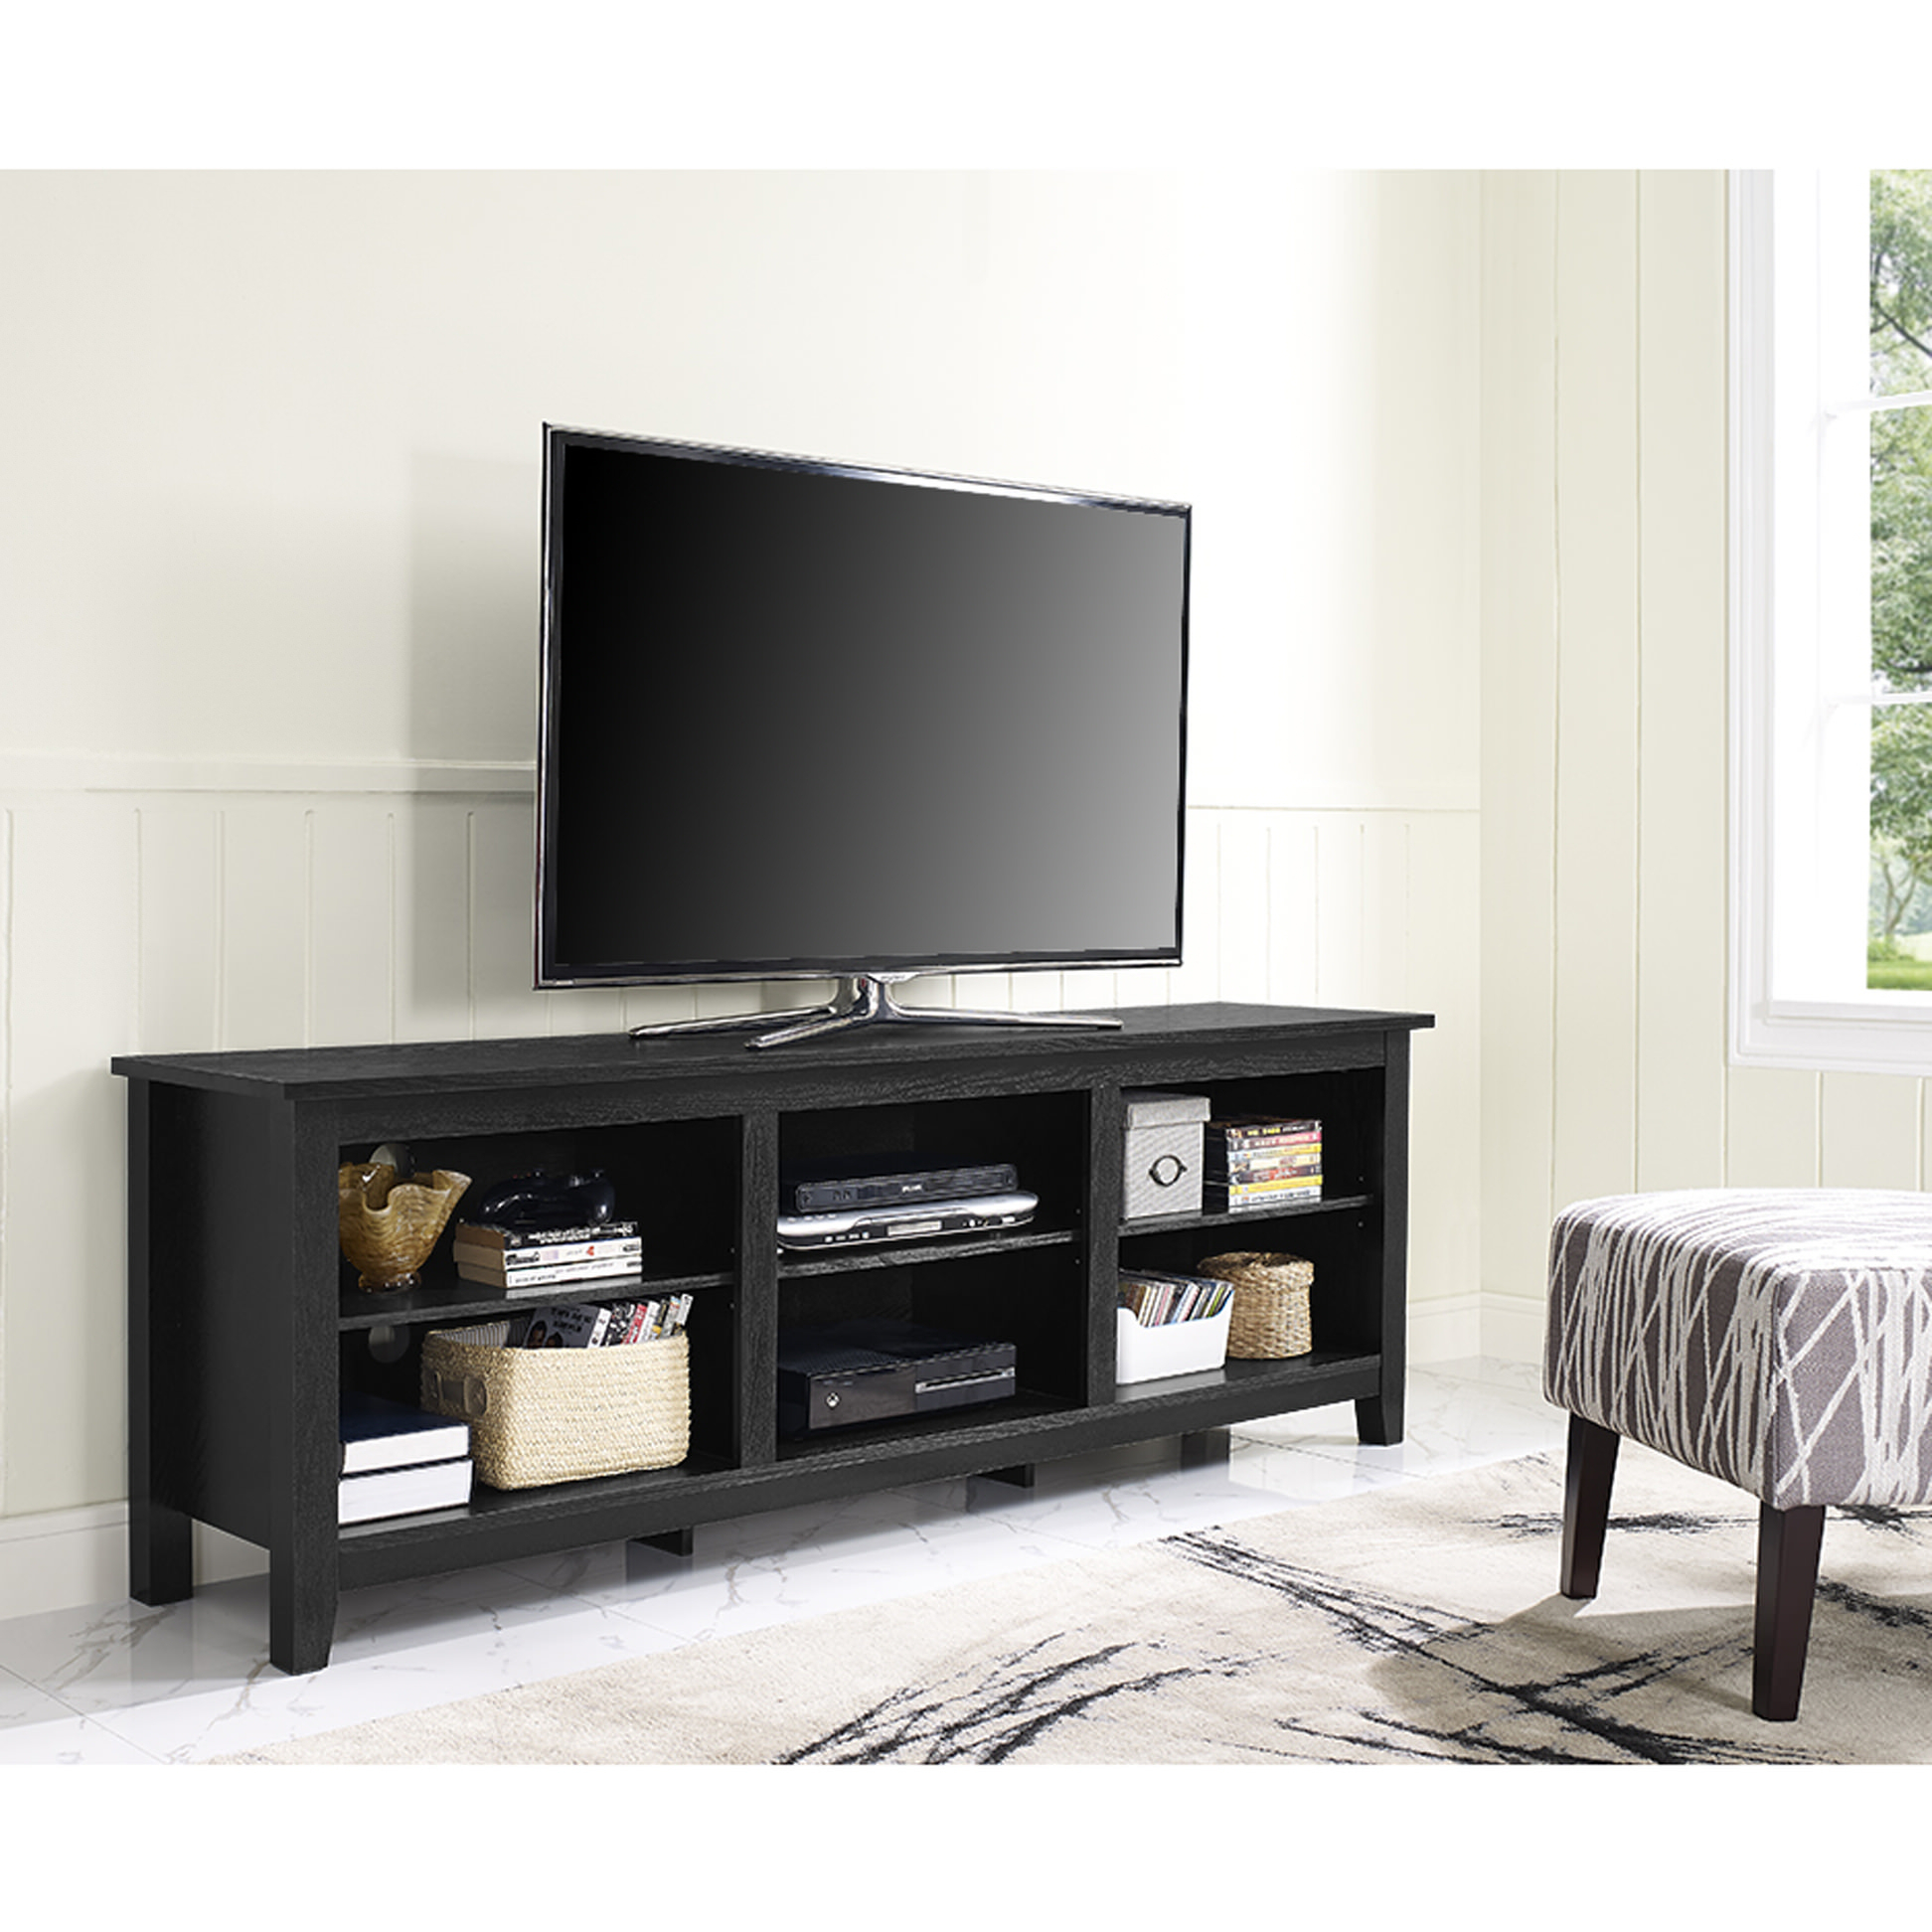 Essentials 70 Inch Tv Stand – Blackwalker Edison Pertaining To Canyon 64 Inch Tv Stands (View 6 of 20)